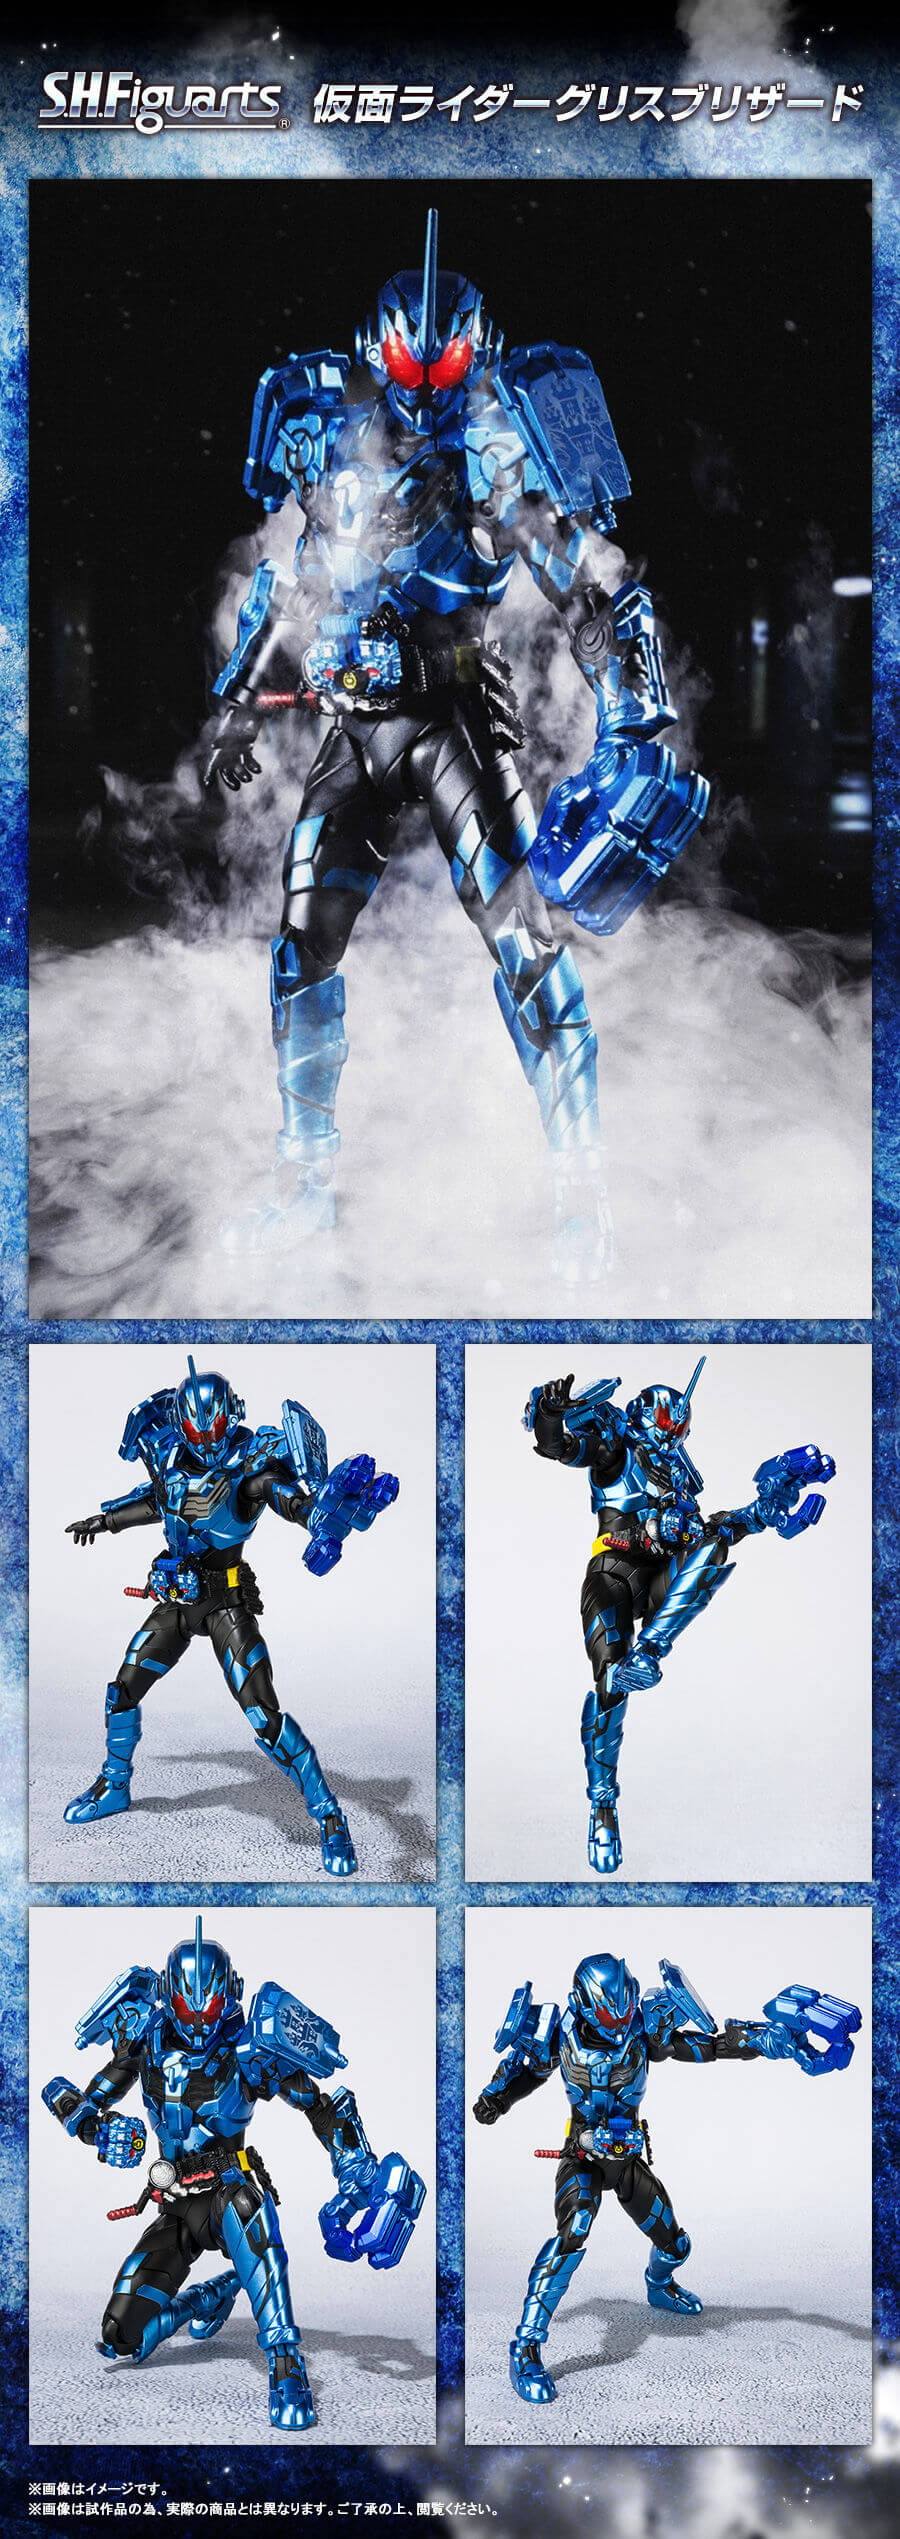 S.H.Figuarts Grease Blizzard